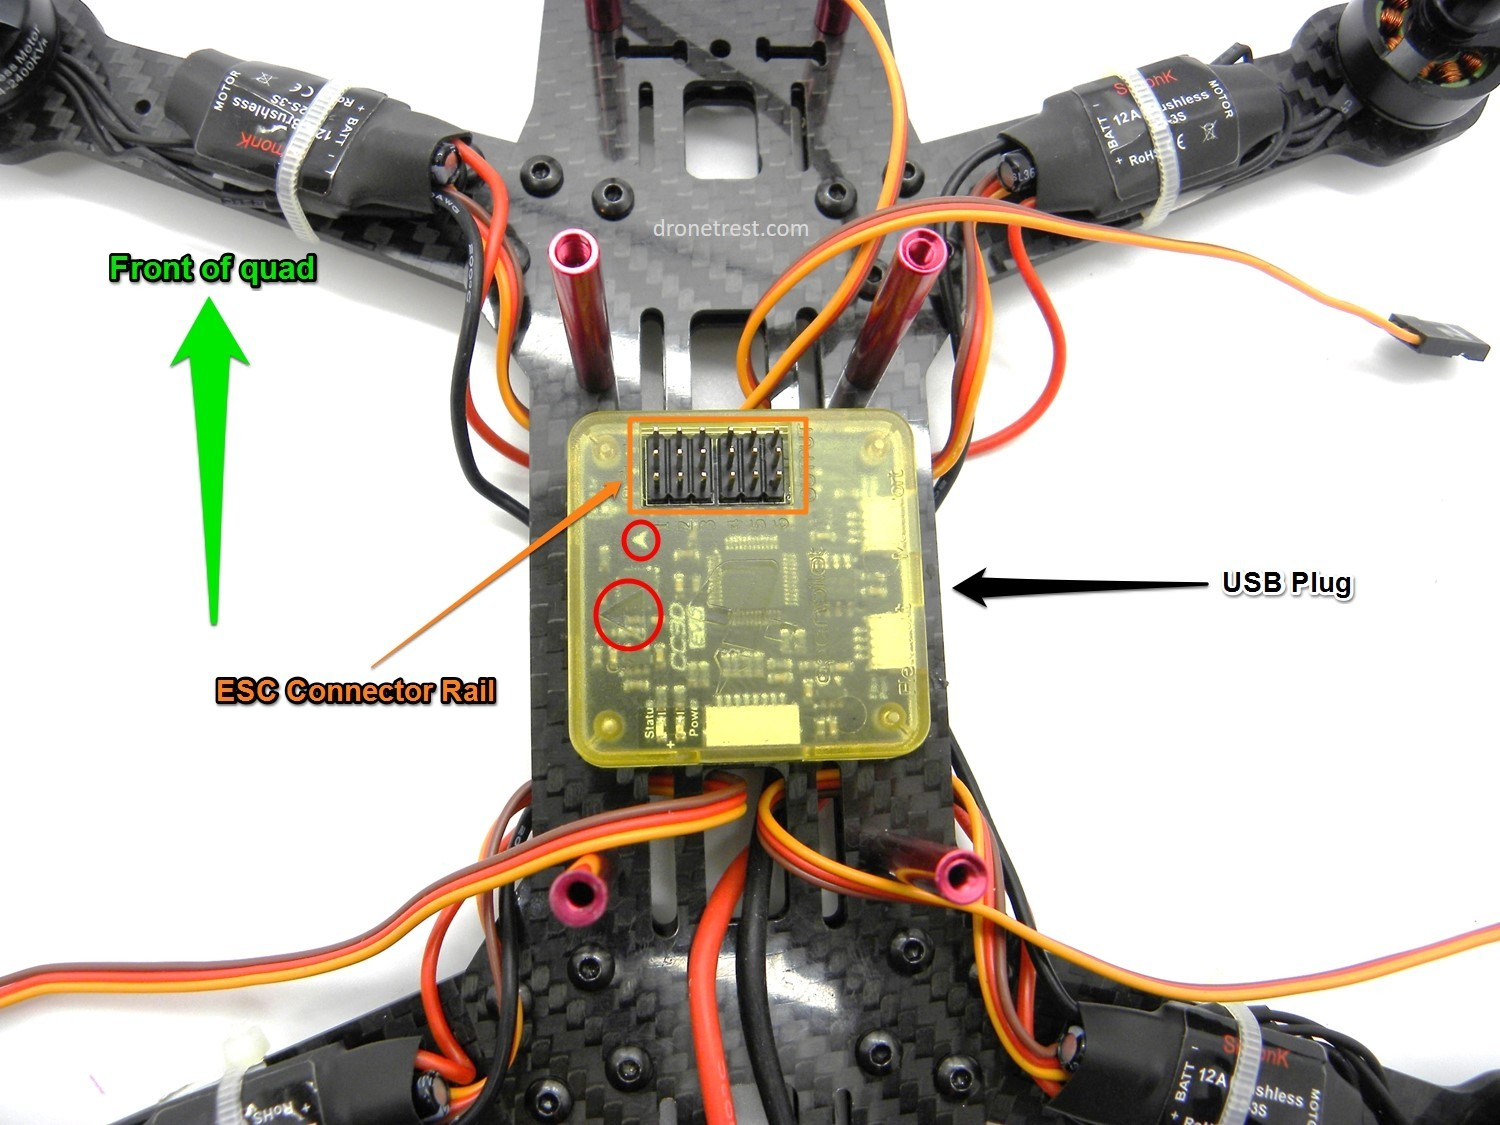 drone wiring diagram qav zmr 250 assembly build guide guides dronetrest cc3d installation jpg1500x1125 277 kb